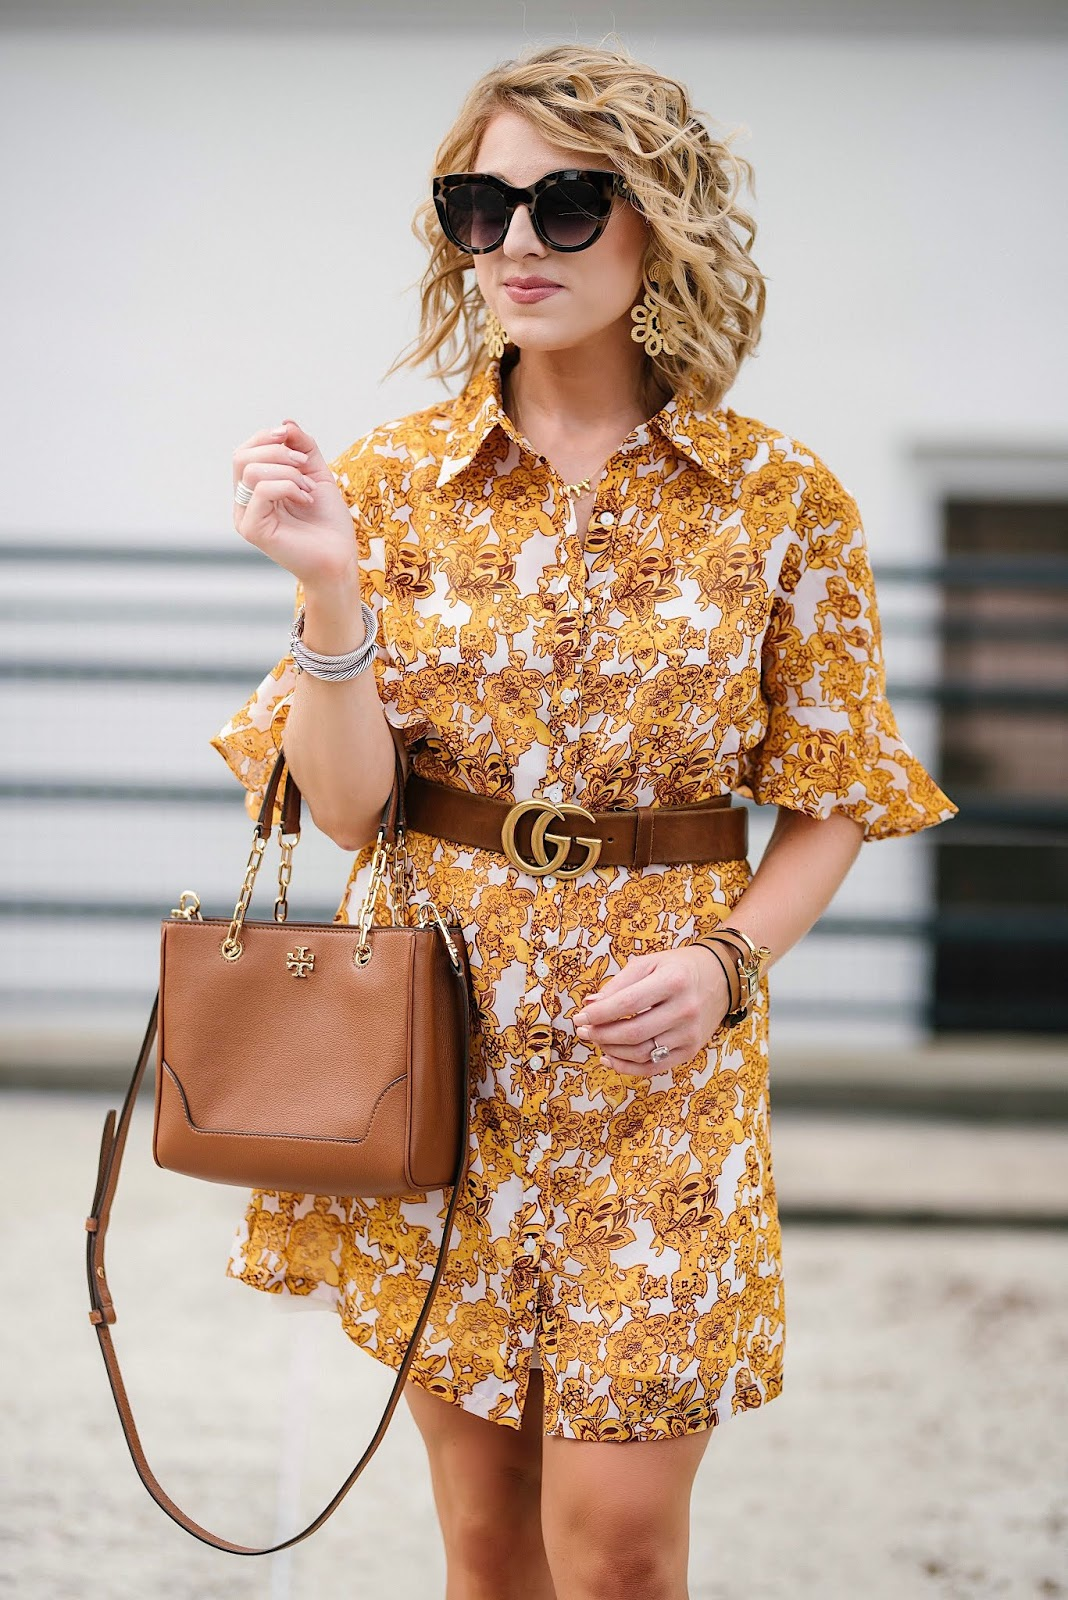 The Perfect Dress To Transition Into Fall: $60 Ruffle Sleeve Shirt Dress - Something Delightful Blog